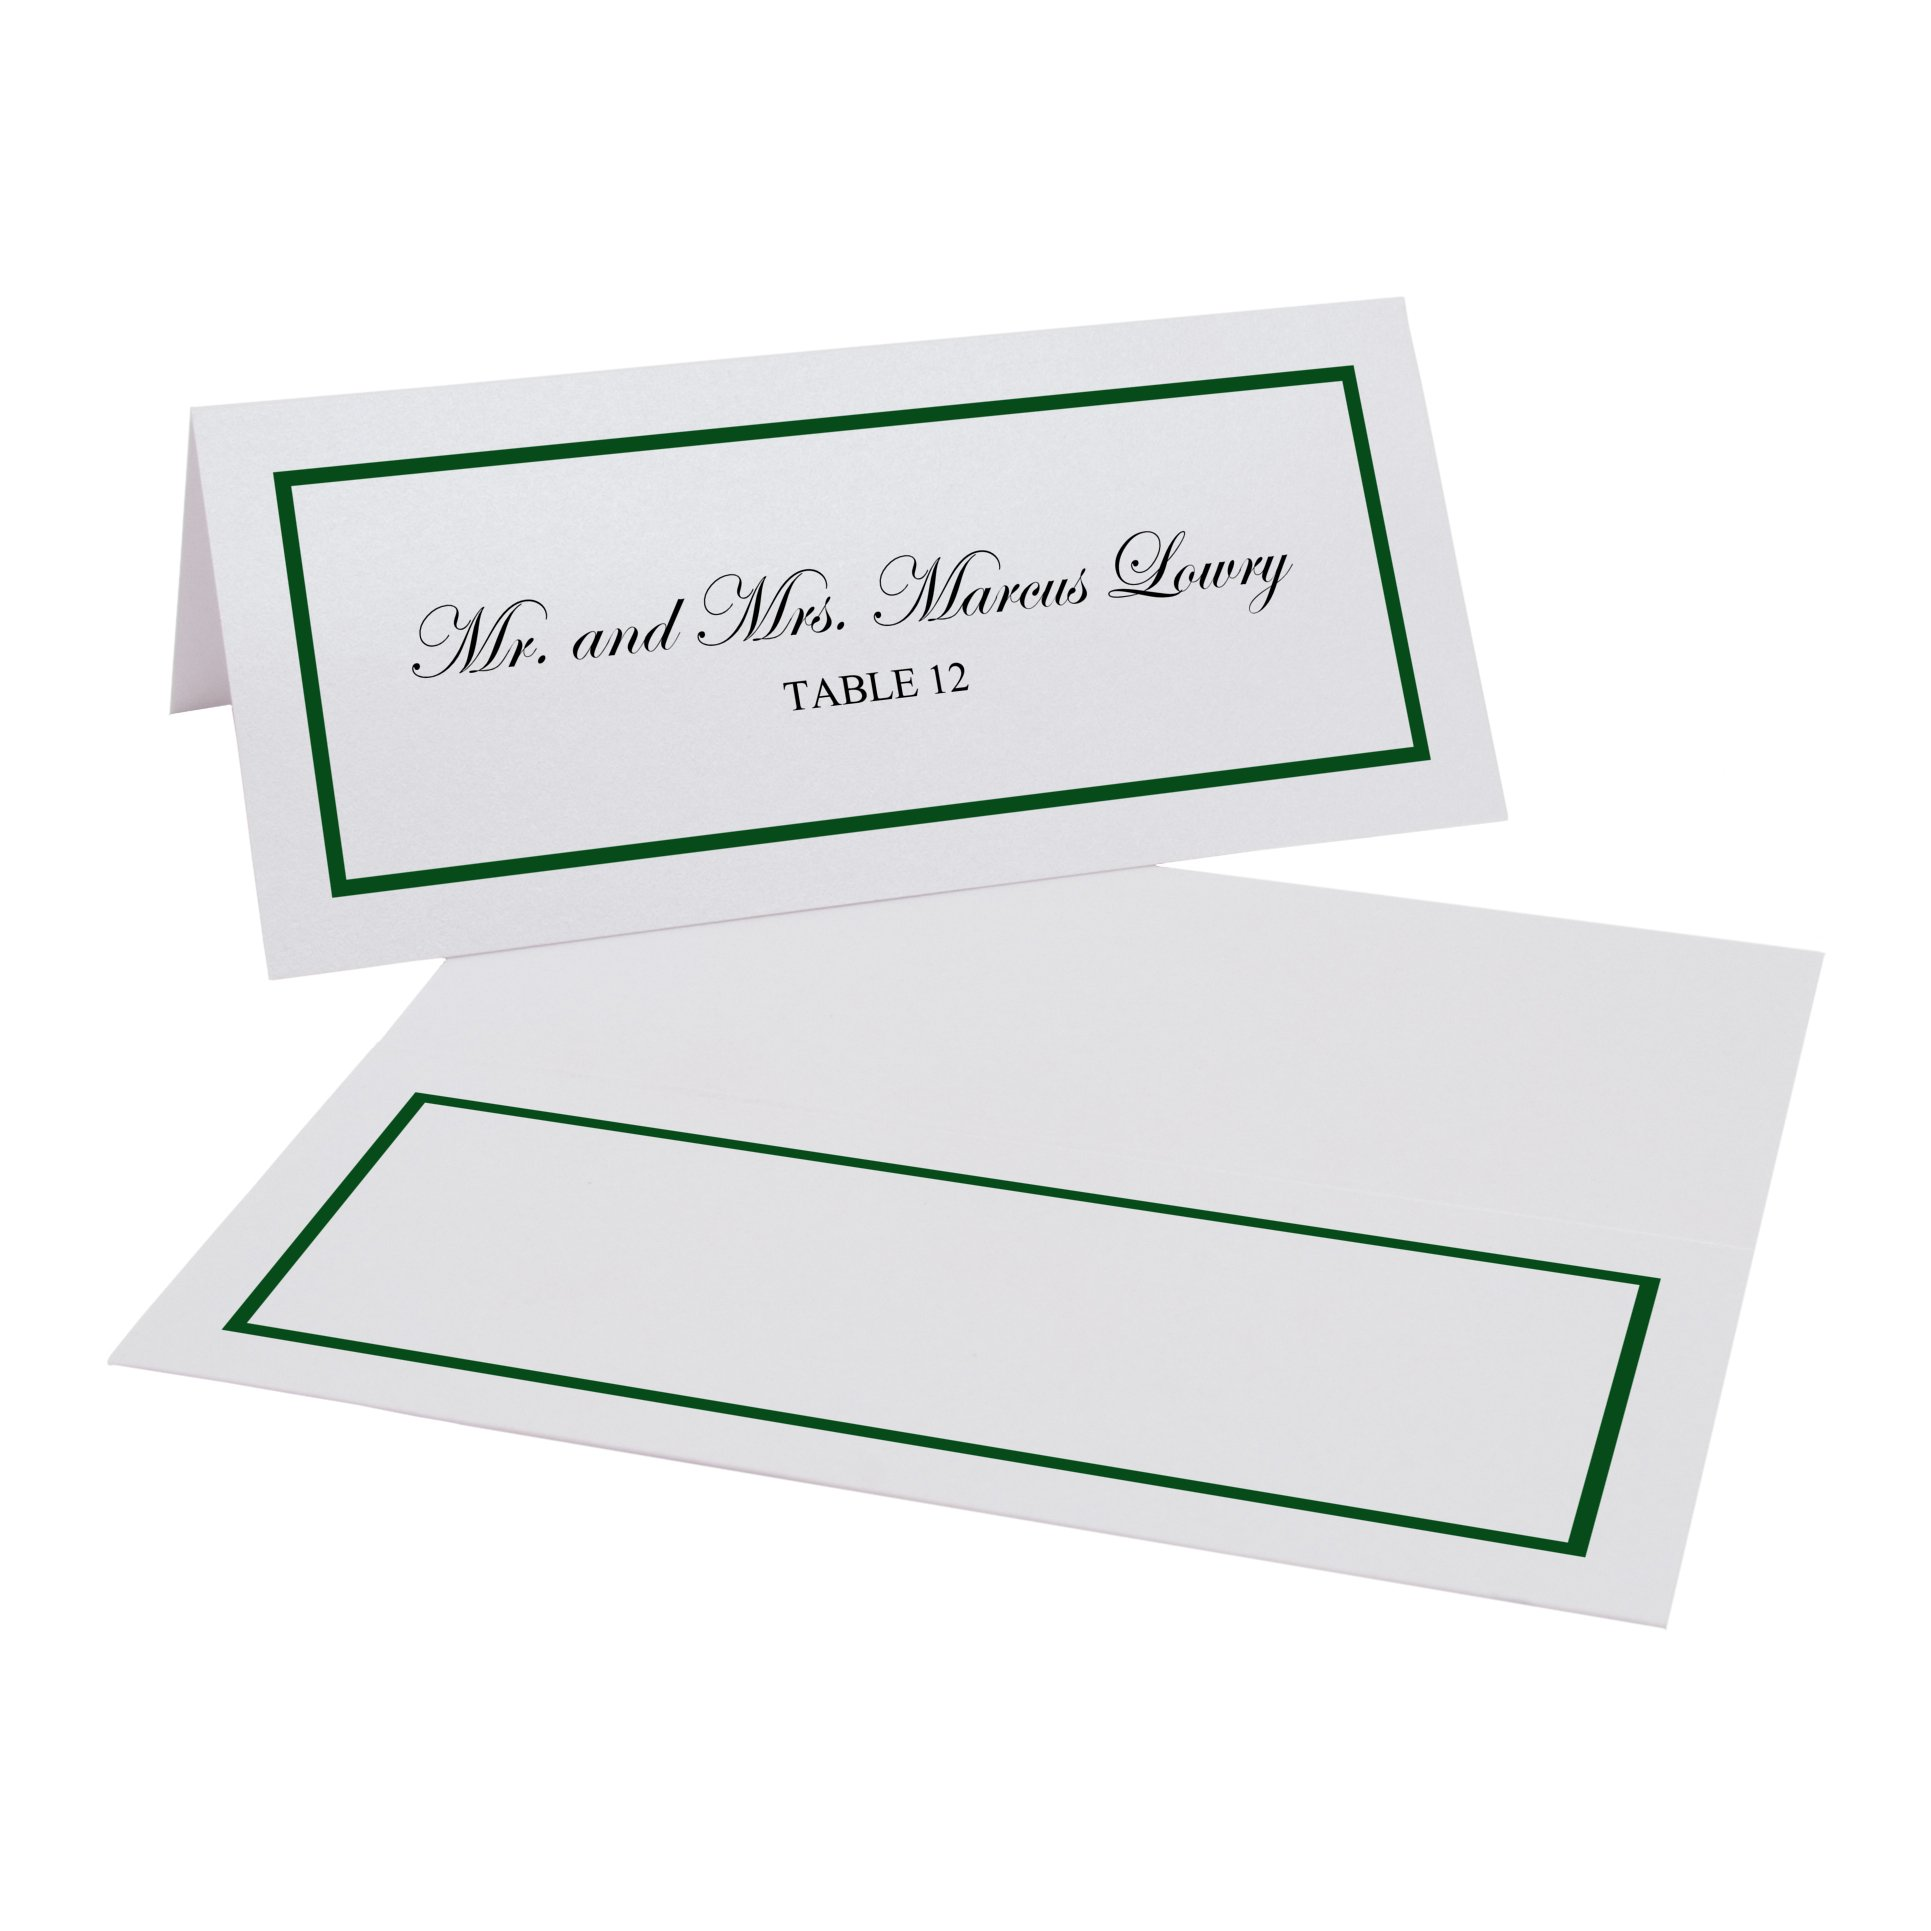 Single Line Border Easy Print Place Cards, Pearl White, Hunter Green, Set of 400 (100 Sheets) by Documents and Designs